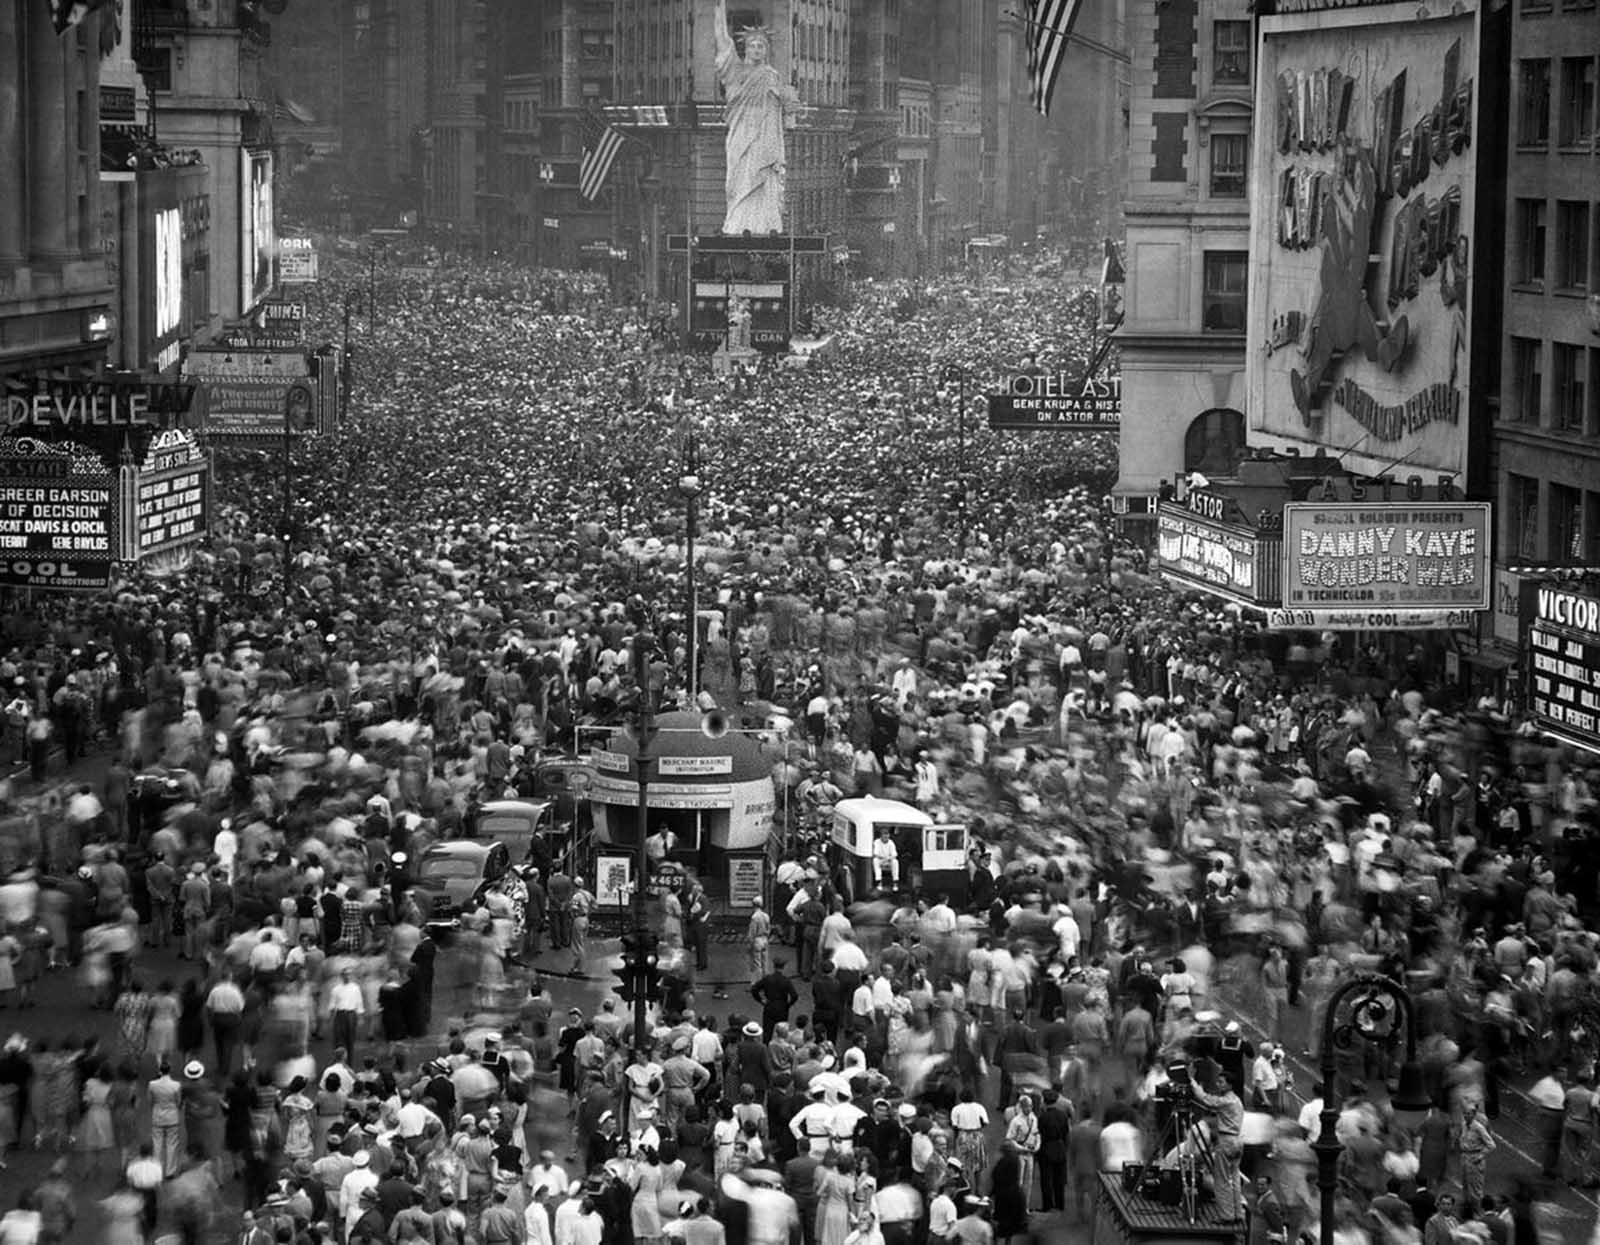 A huge crowd in New York's Times Square jubilantly welcome the news that the Japanese had accepted the Allies terms of surrender on August 14, 1945.